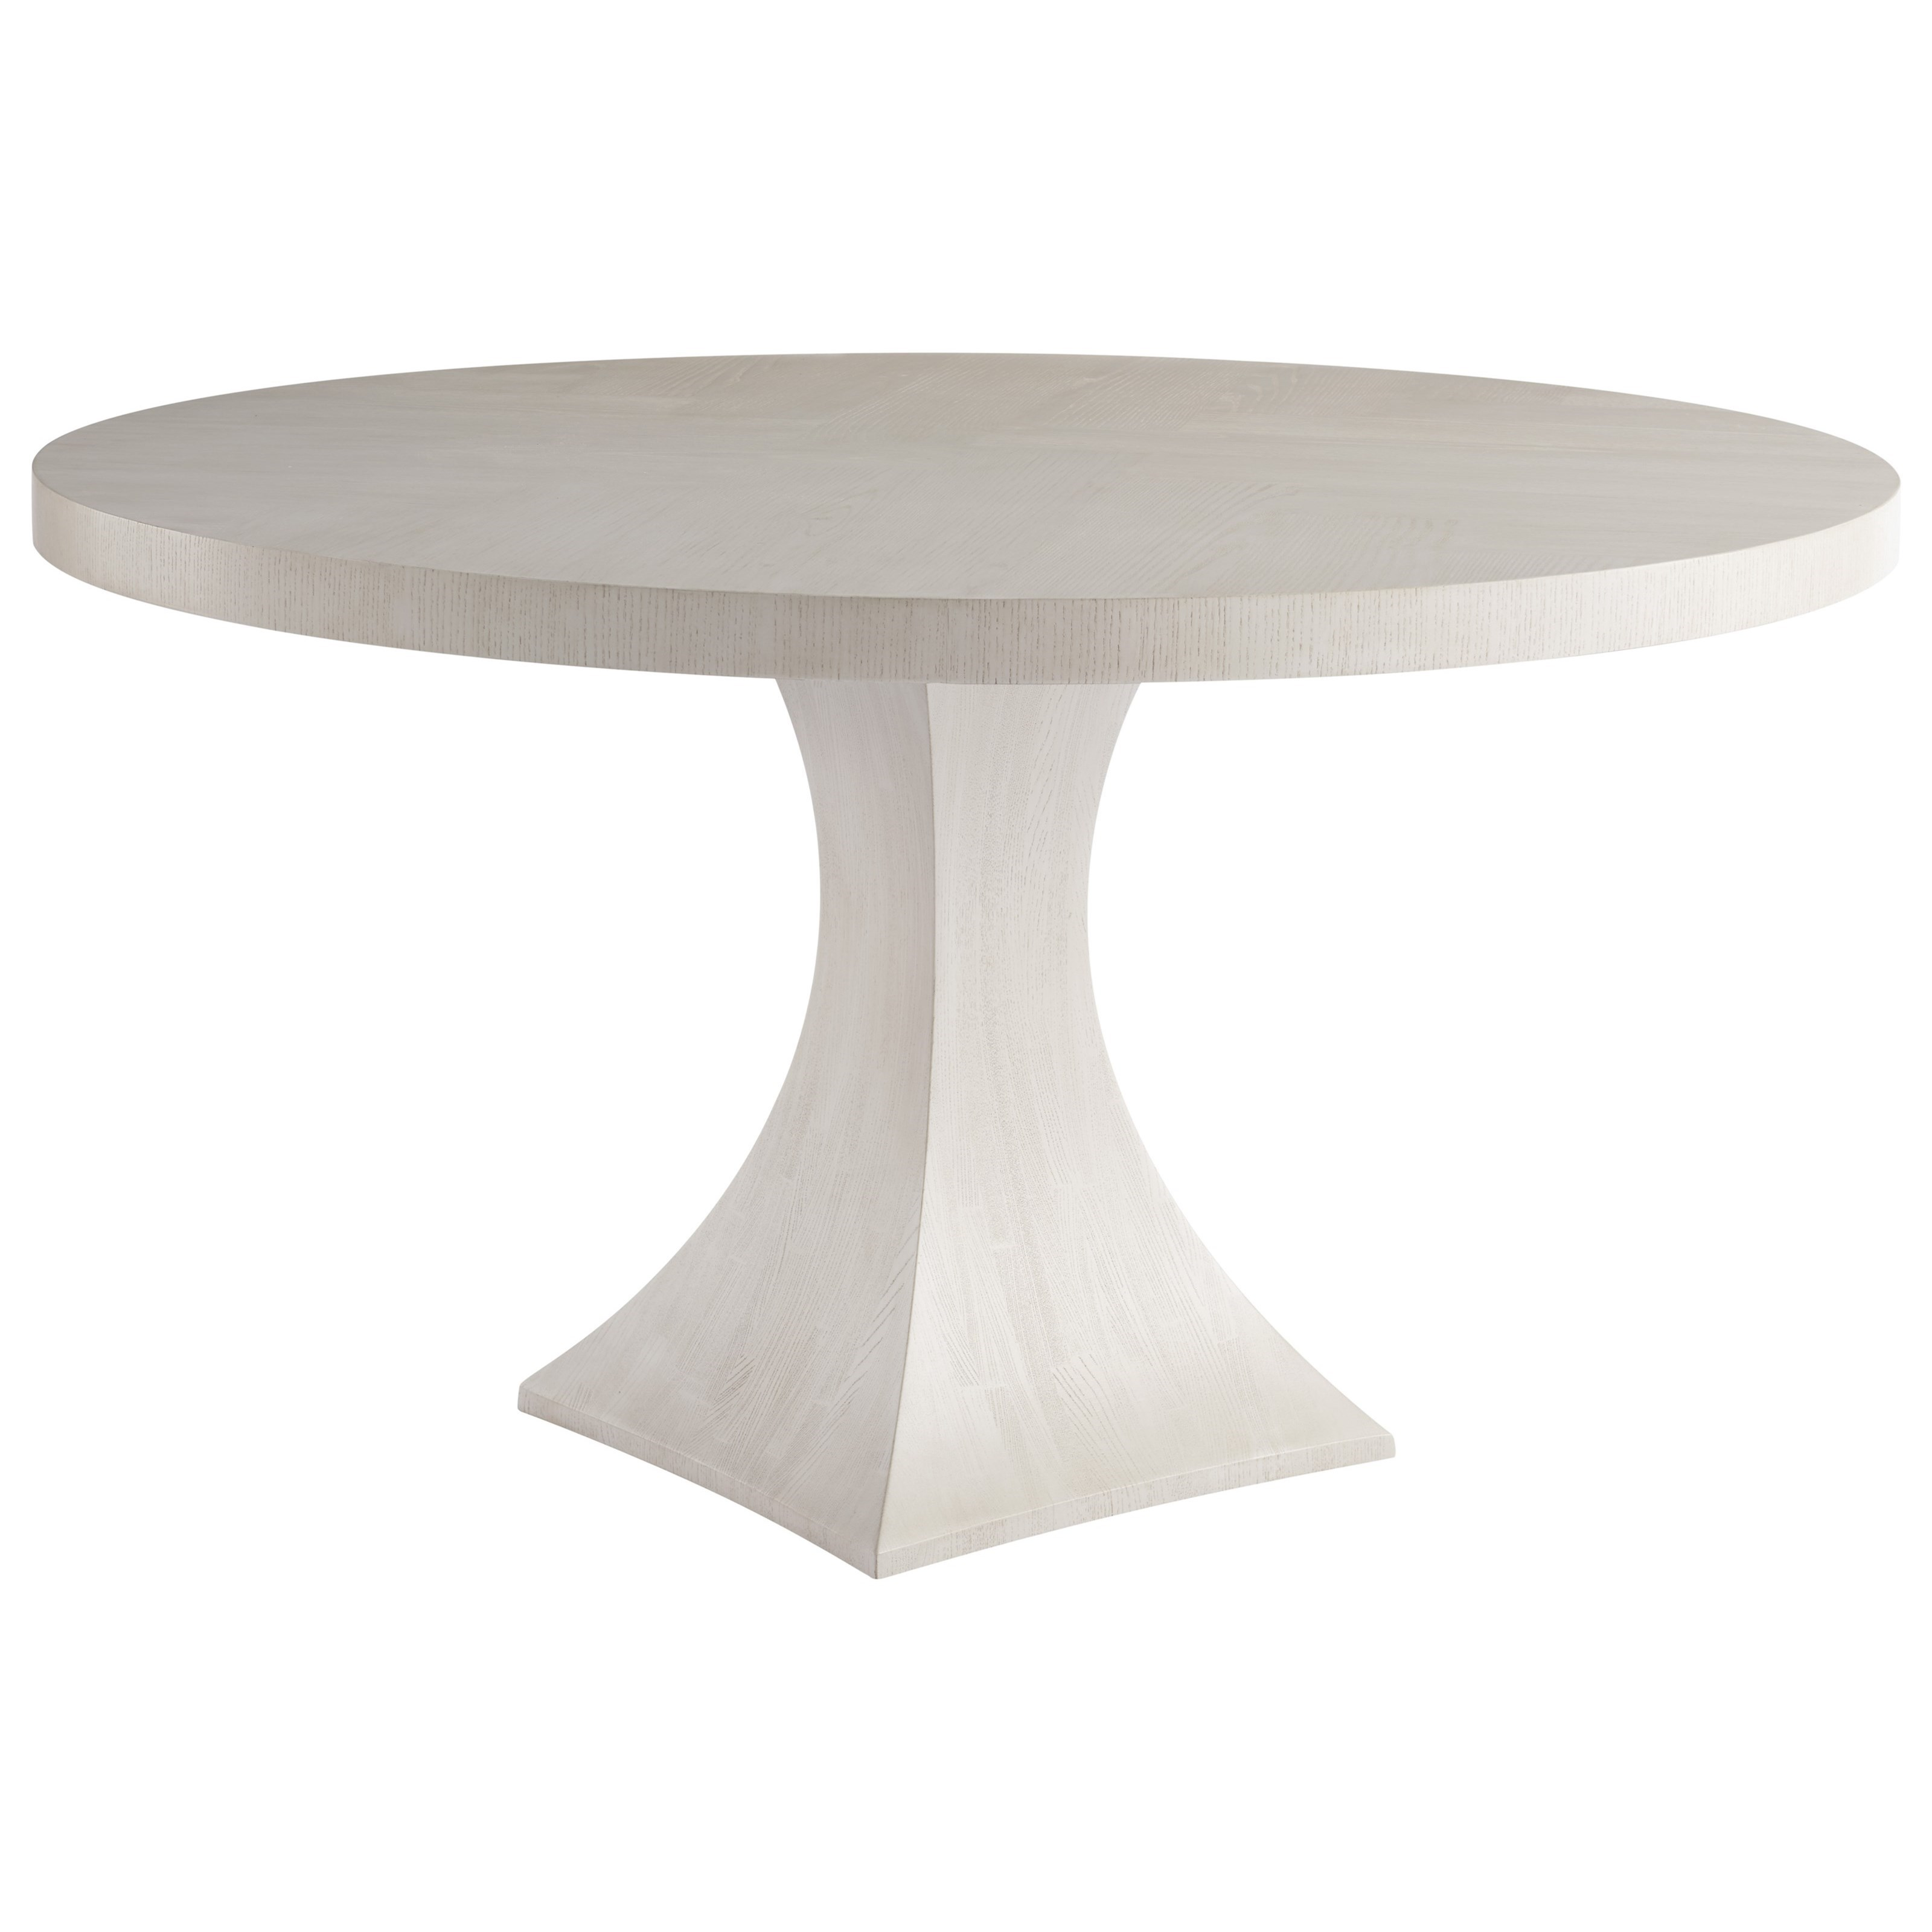 Paradox Contemporary Integrity Round Dining Table By Wittman U0026 Co.